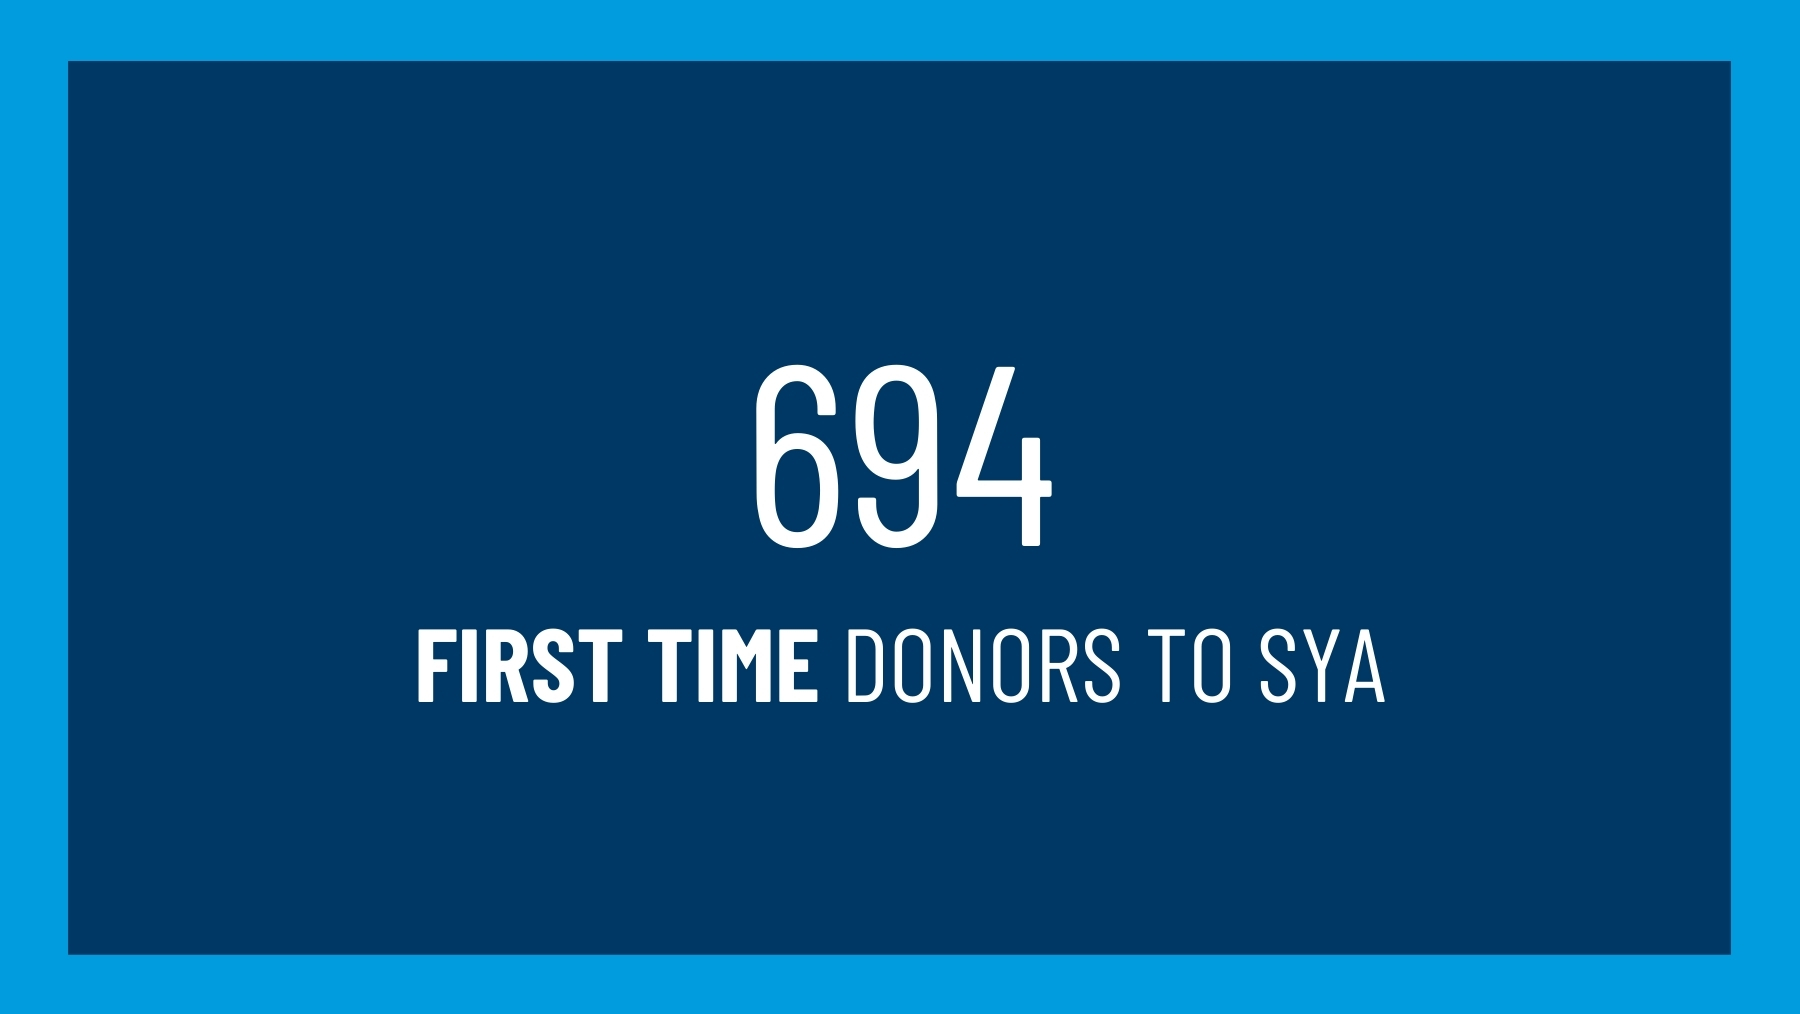 694 first time donors to SYA